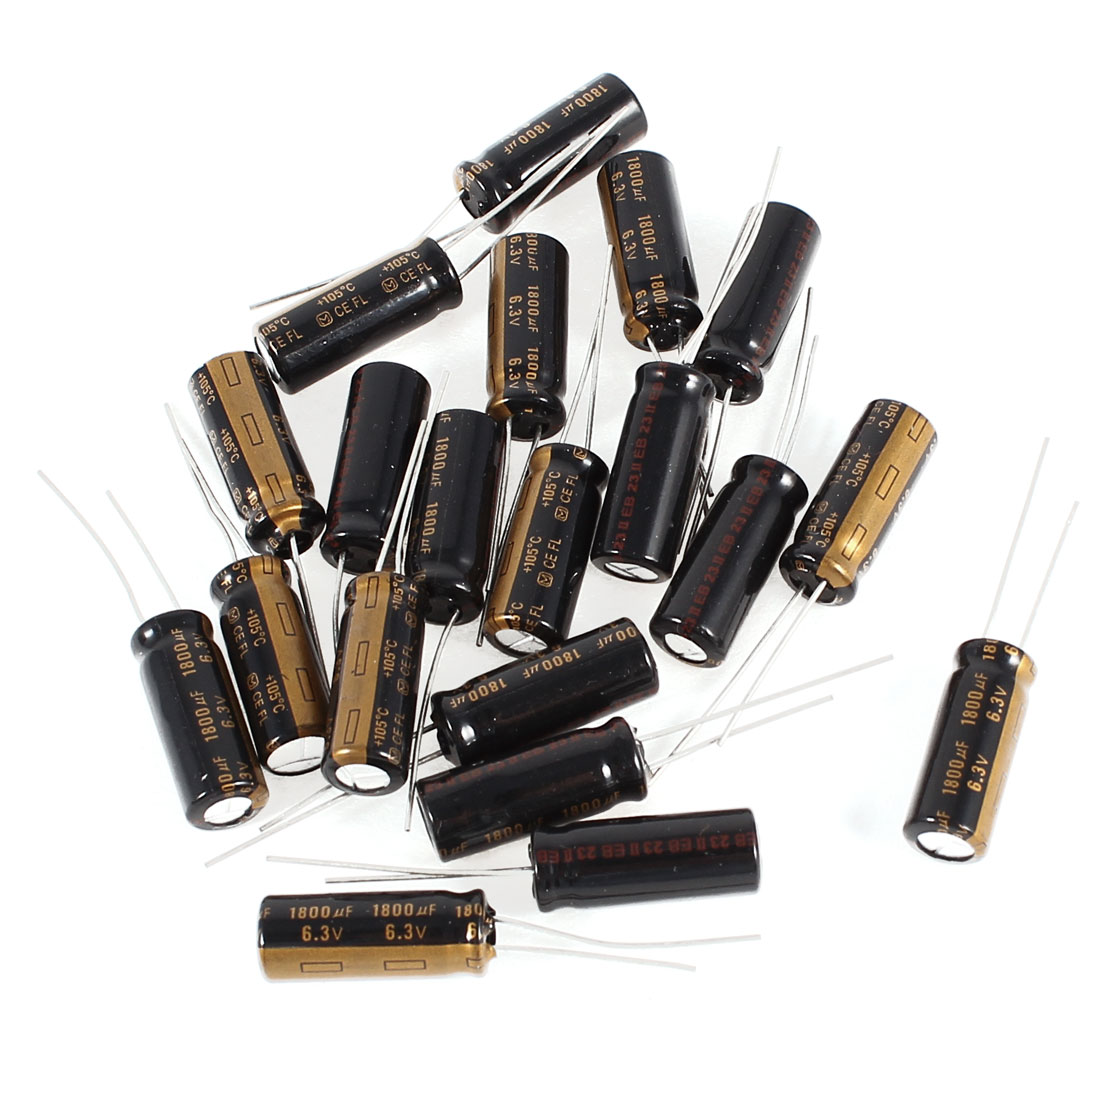 20 Pcs 1800uF 6.3V Radial Leads Aluminum Electrolytic Capacitors 8x20mm